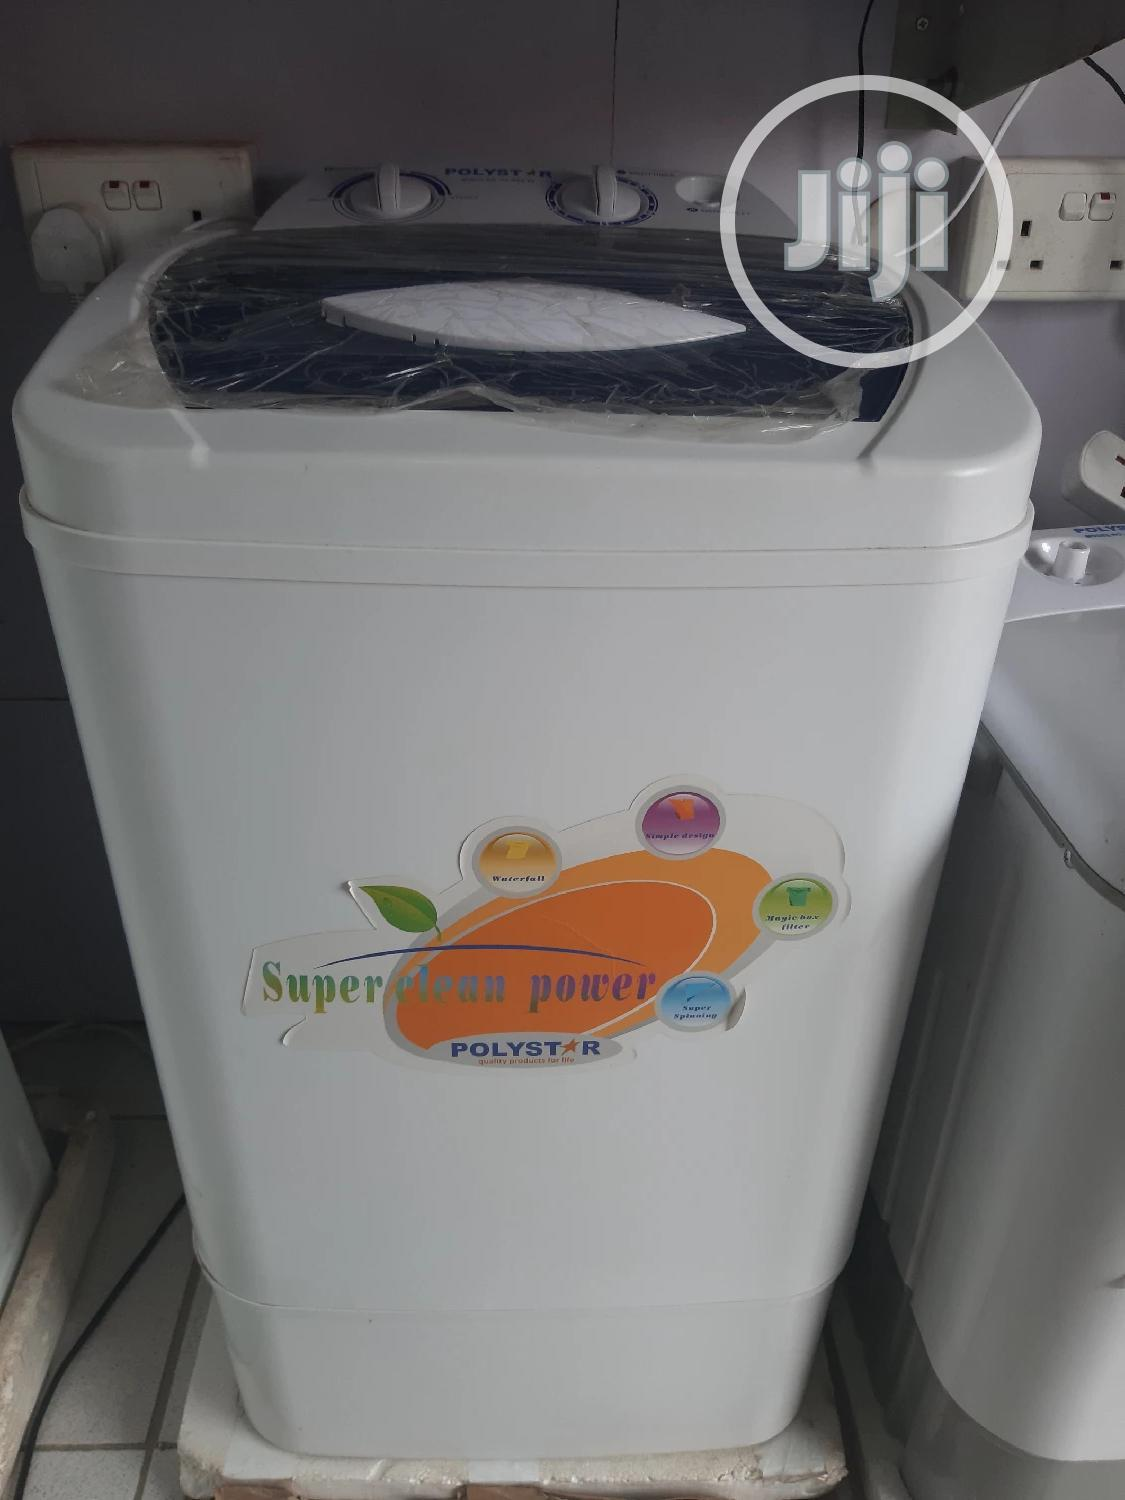 Polystar 6.5kg Top Load Semi Auto Washing Machine